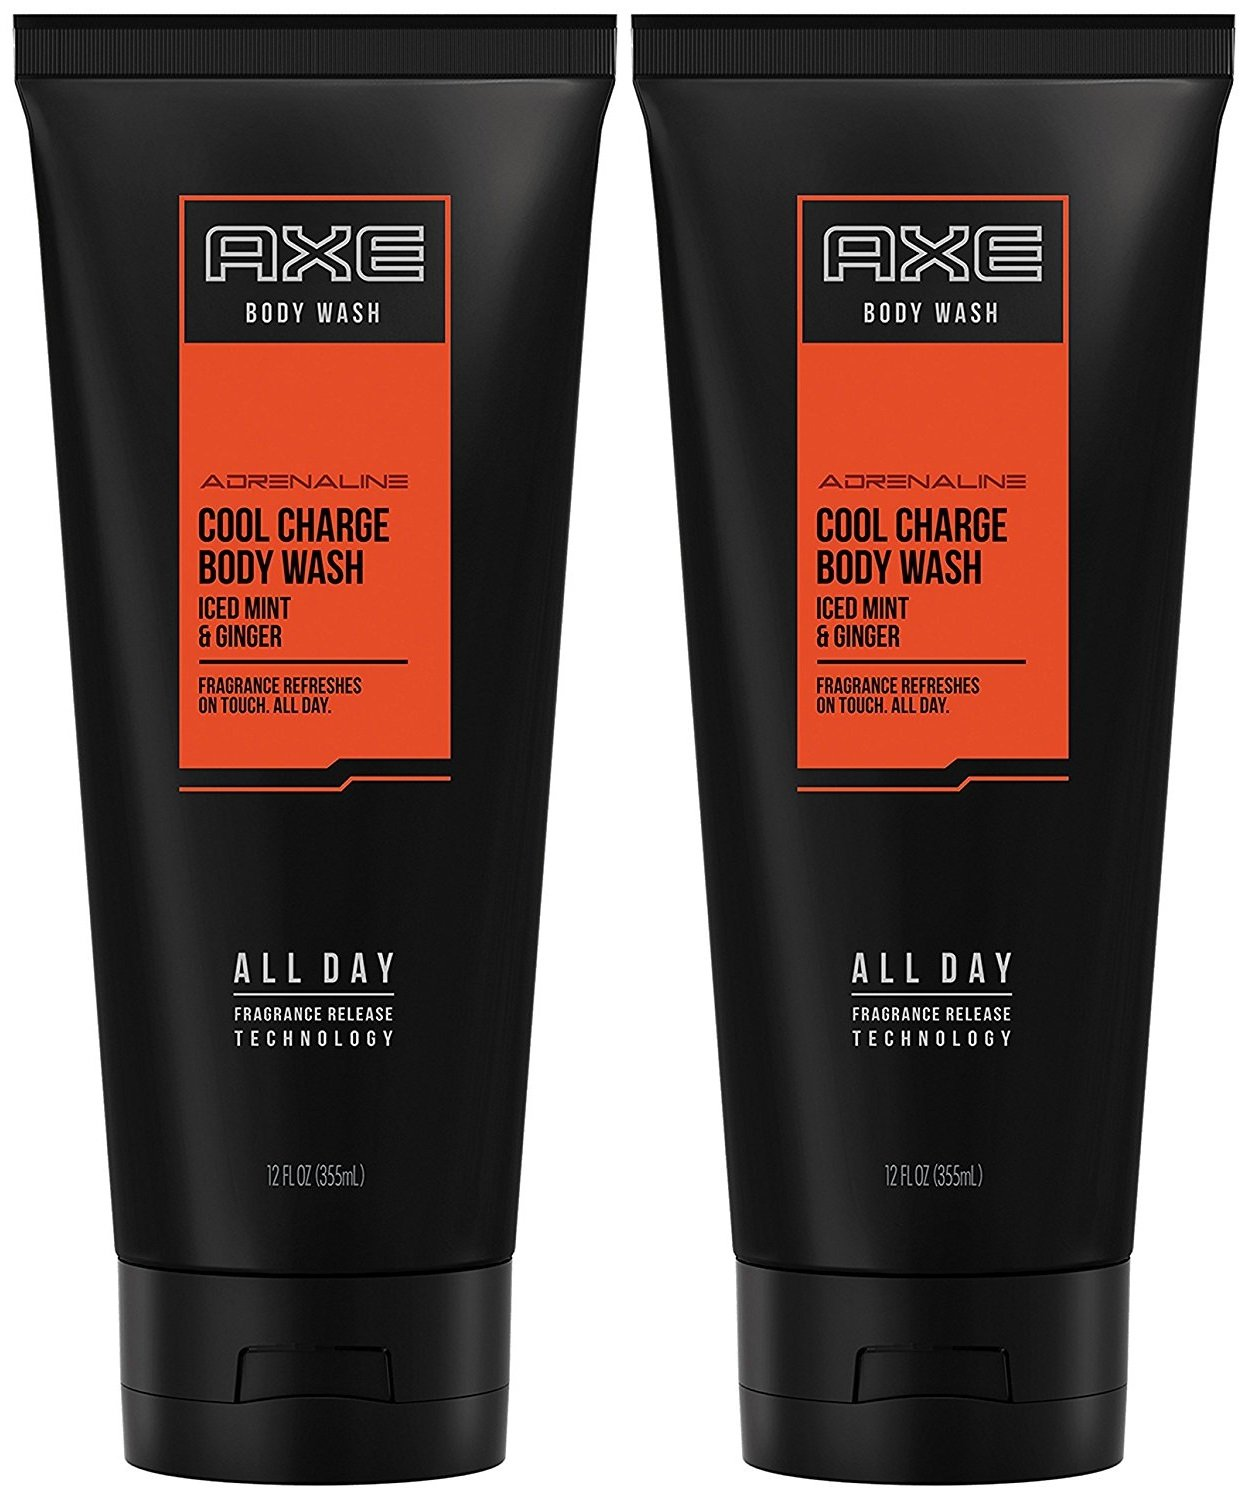 Axe Cool Charge Body Wash, Iced Mint & Ginger, 12 Oz. Tube, (Pack of 2)